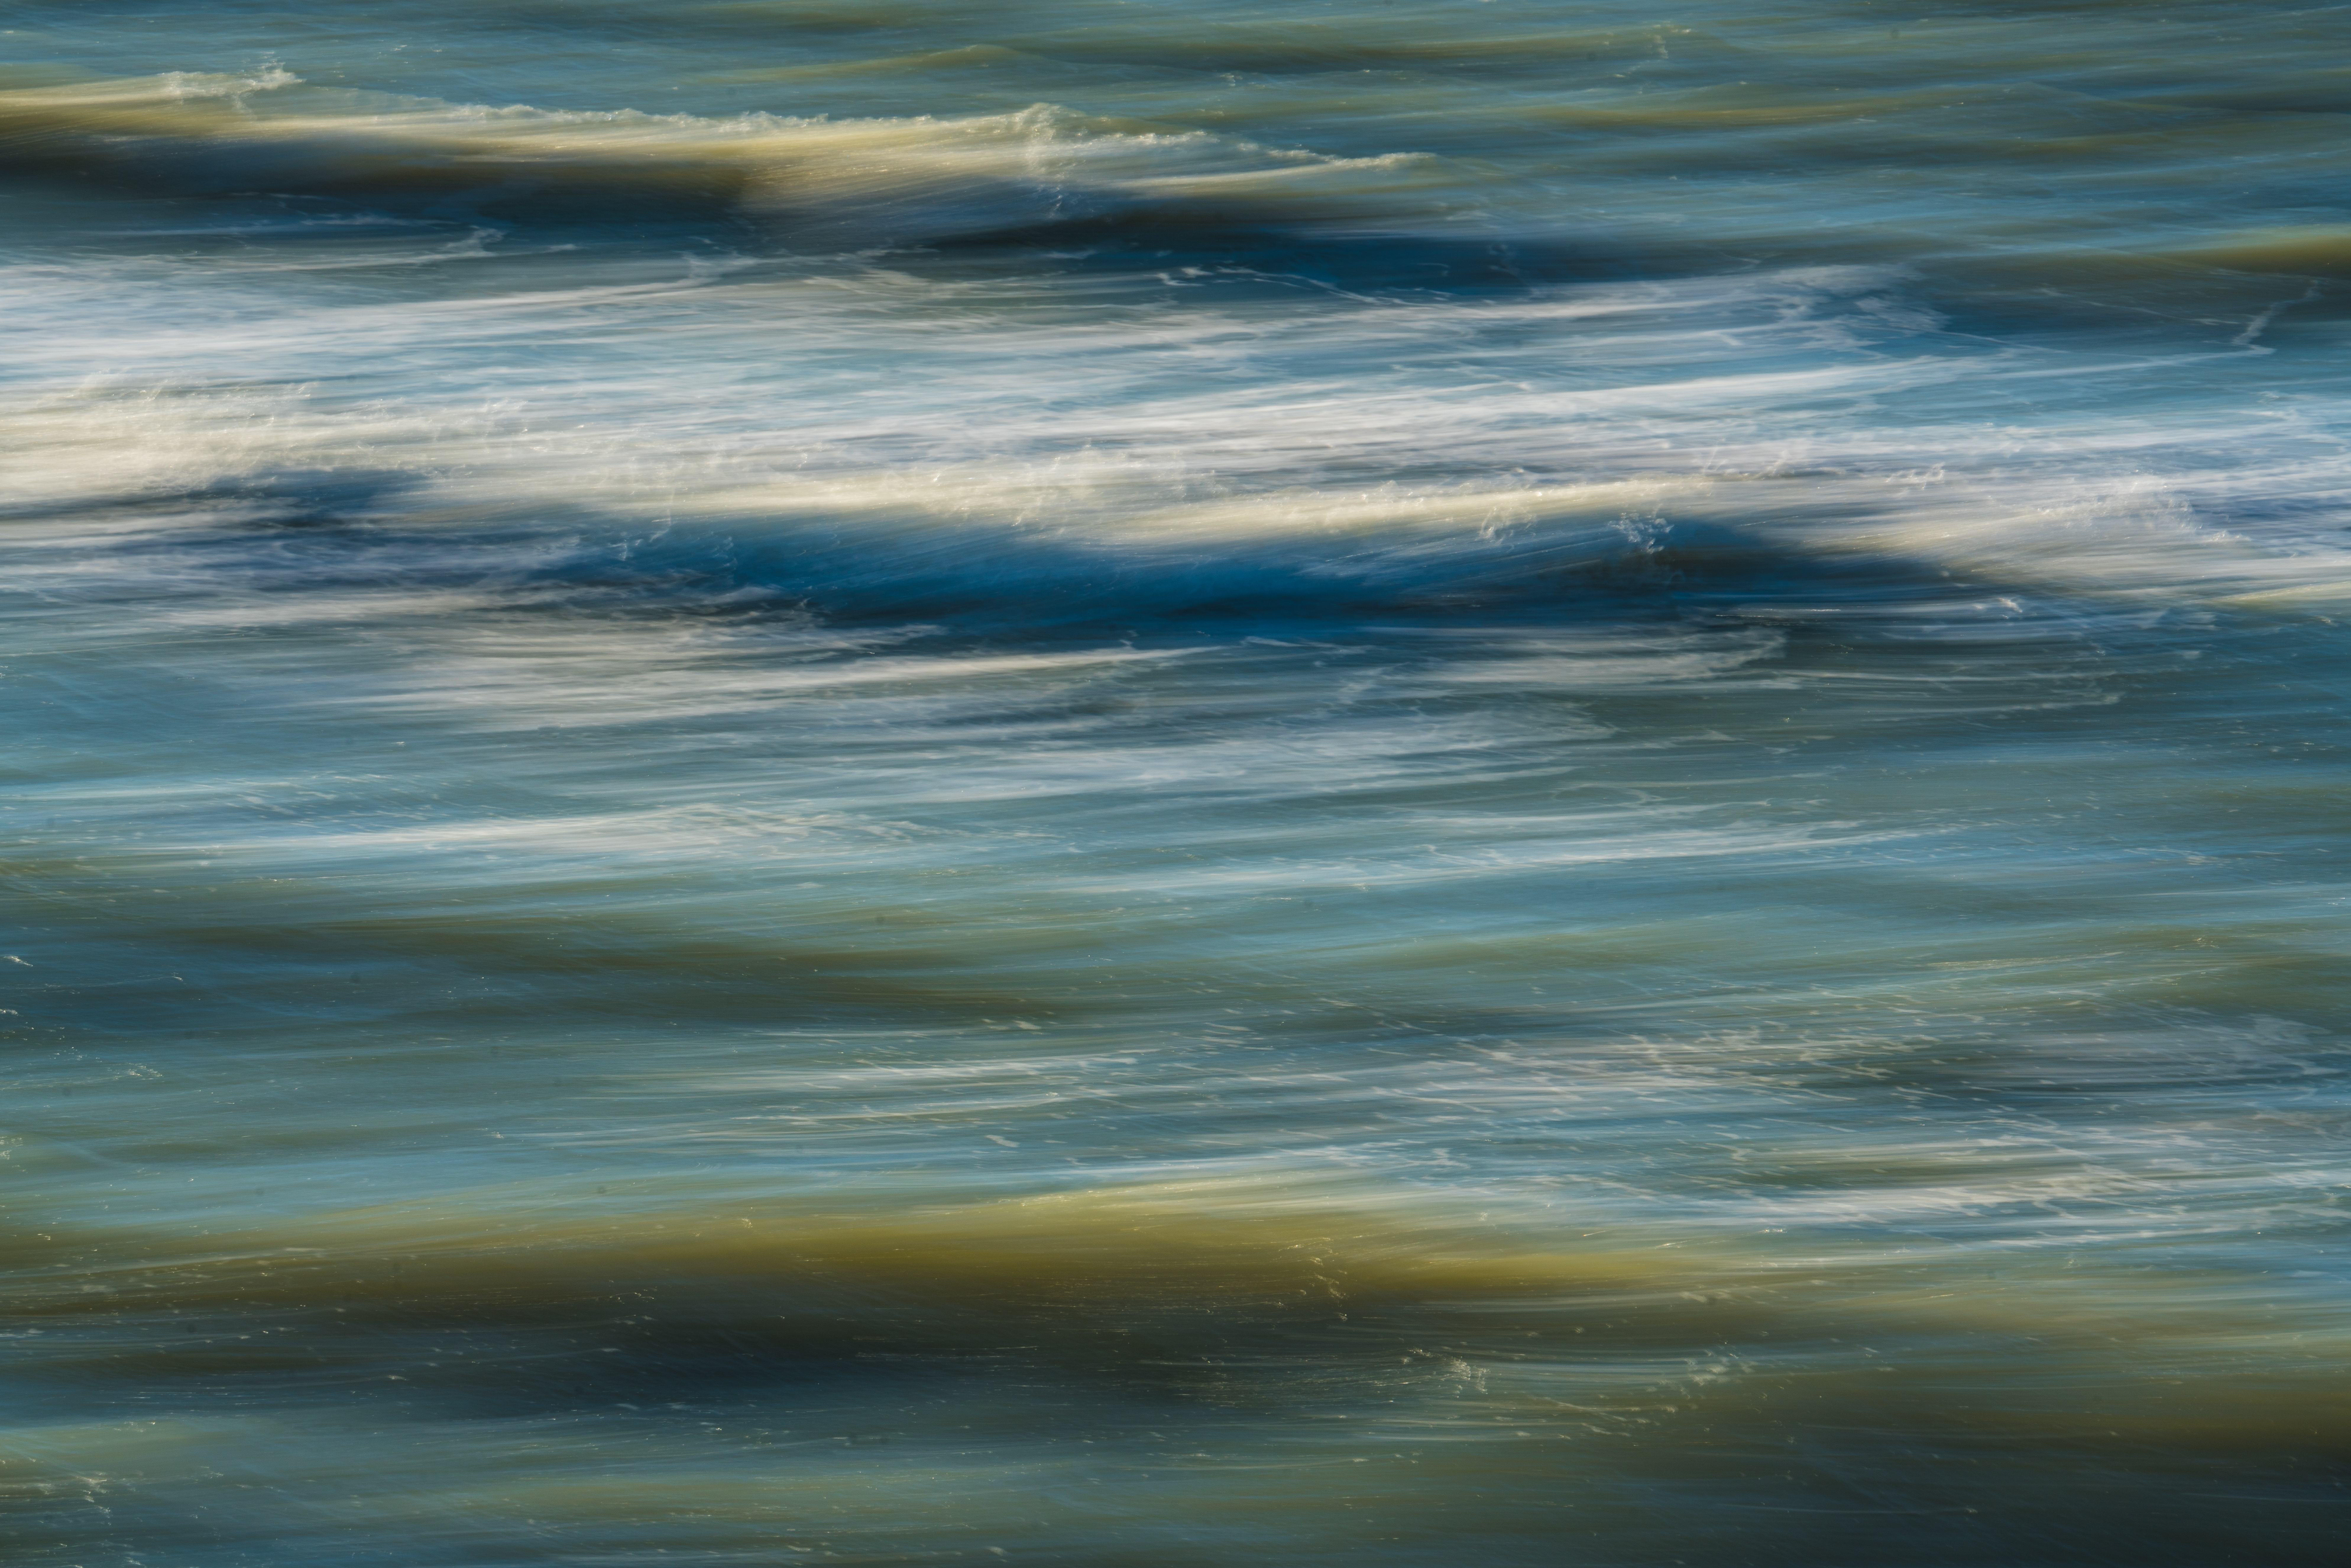 #ocean, #gulf, #florida, #water, #surf, #blue, #windy, #ICM